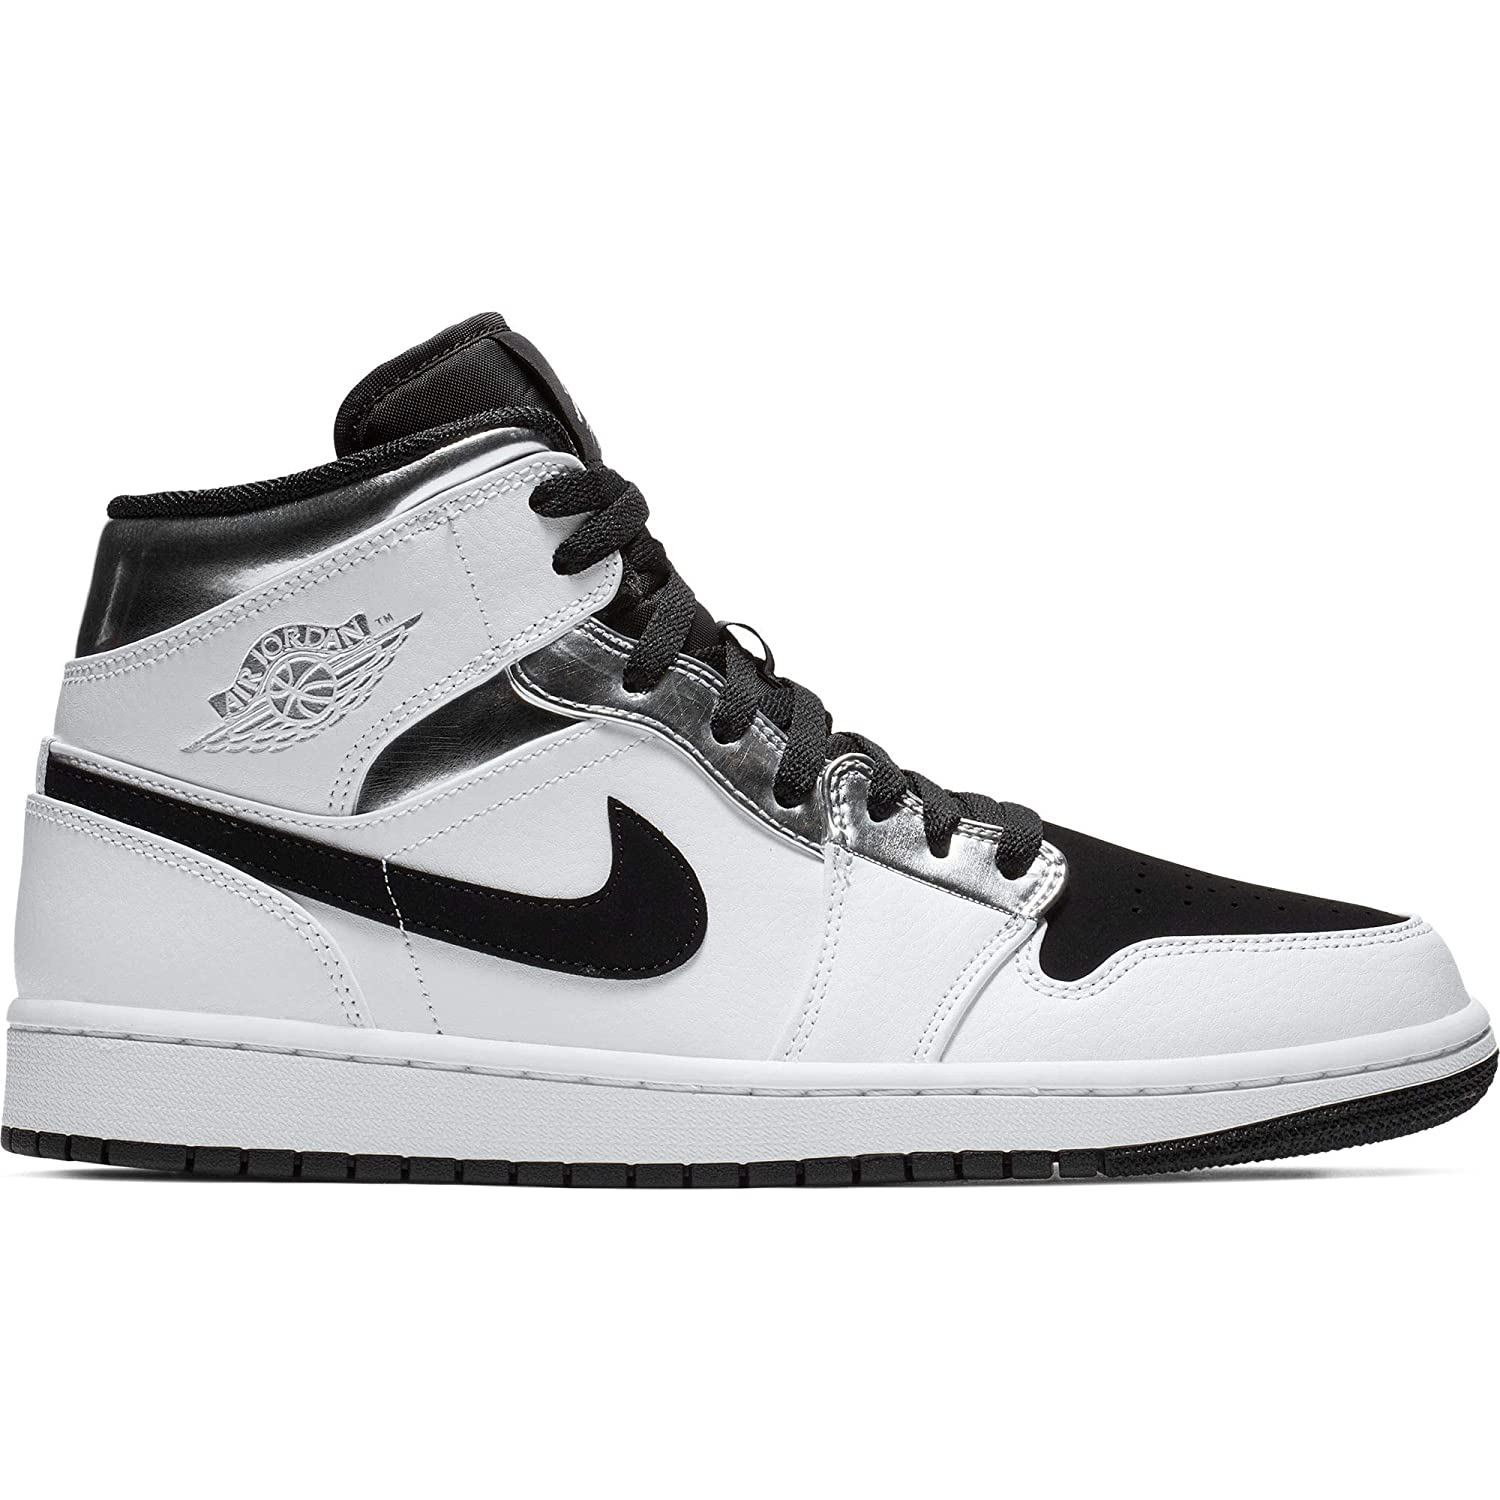 best service 399c4 d8b85 Amazon.com   Nike Air Jordan 1 Mid 554724-121 White Metallic Silver - Black  (13)   Basketball